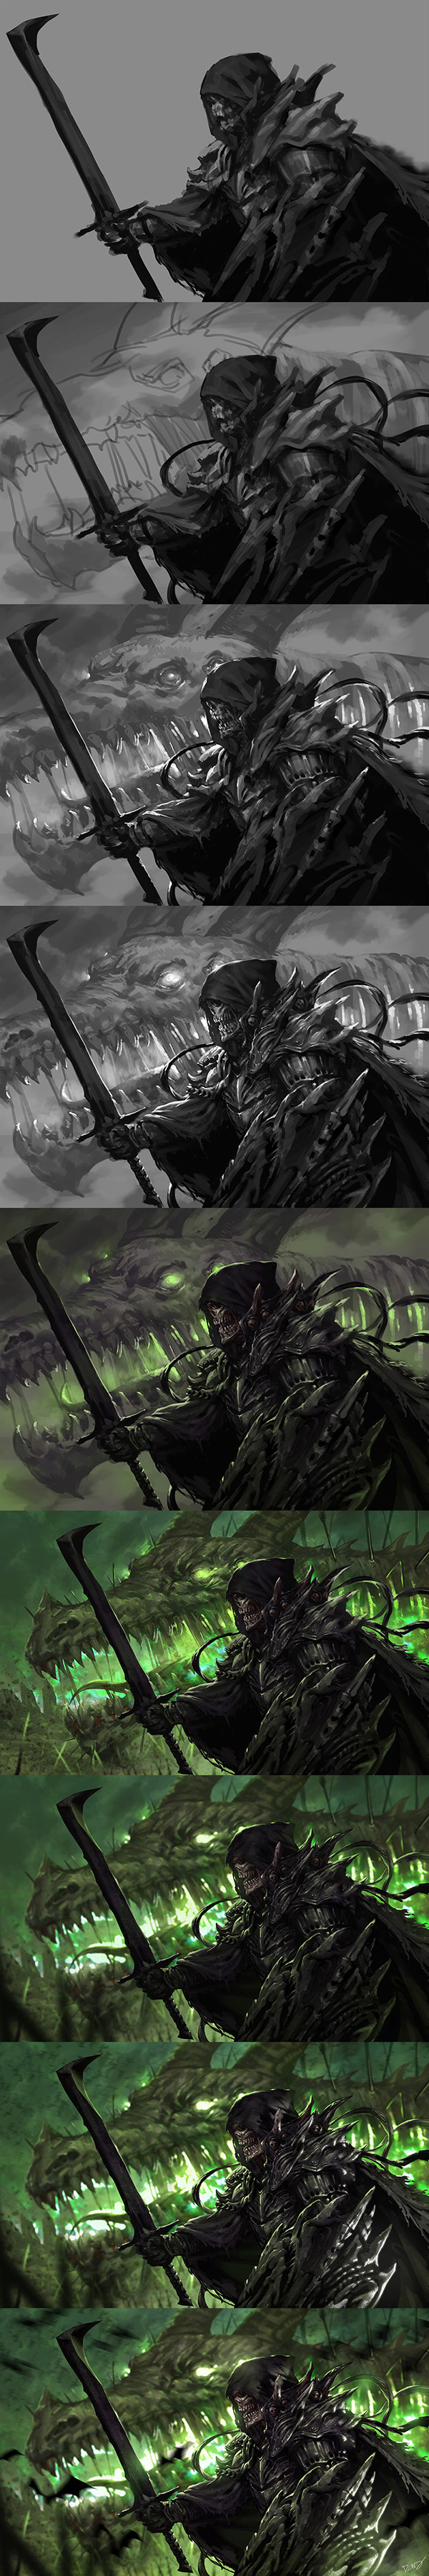 Undead Knight Work Process by dcwj